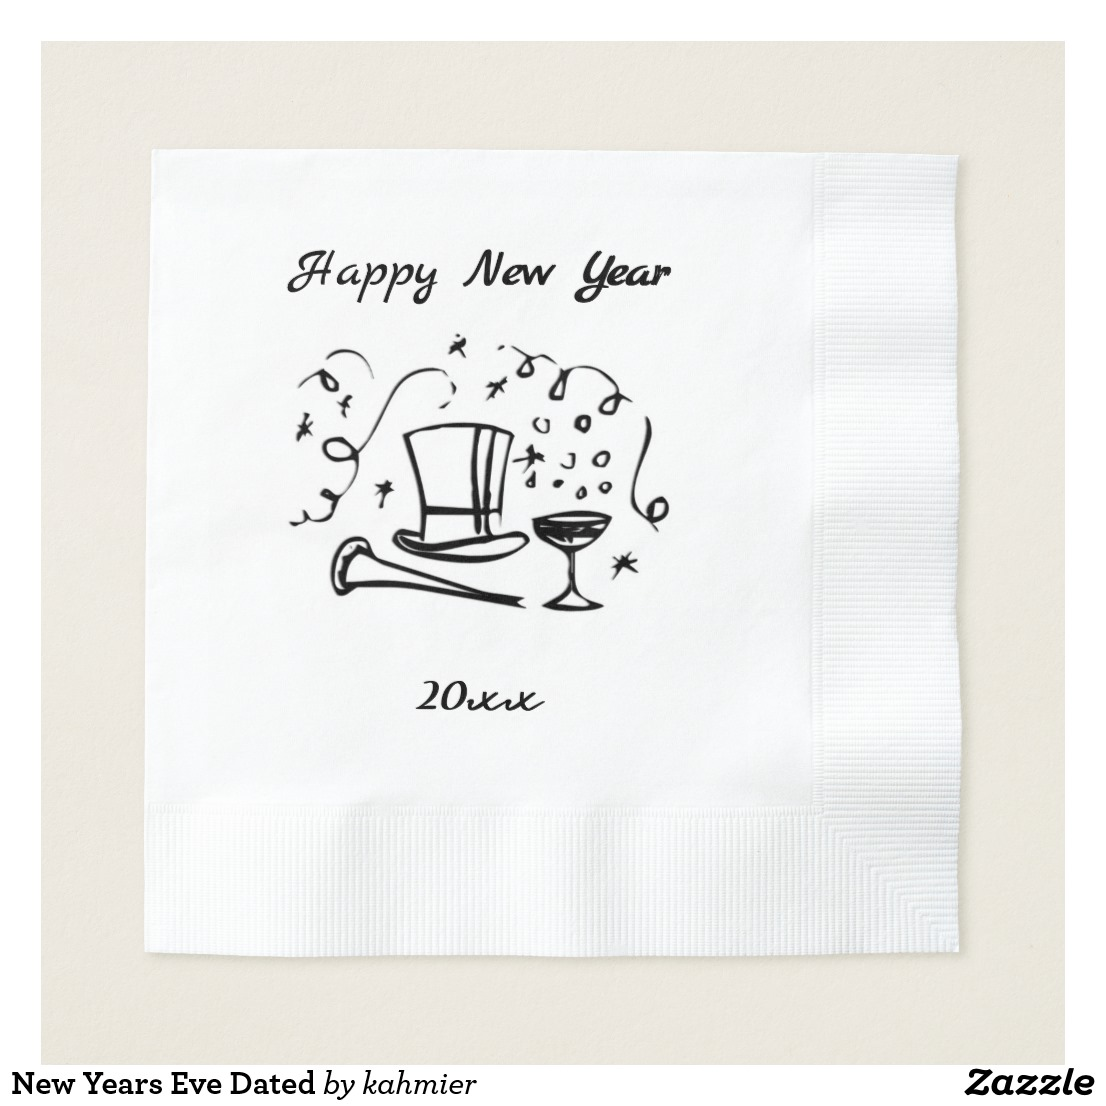 New Years Eve Dated Napkin